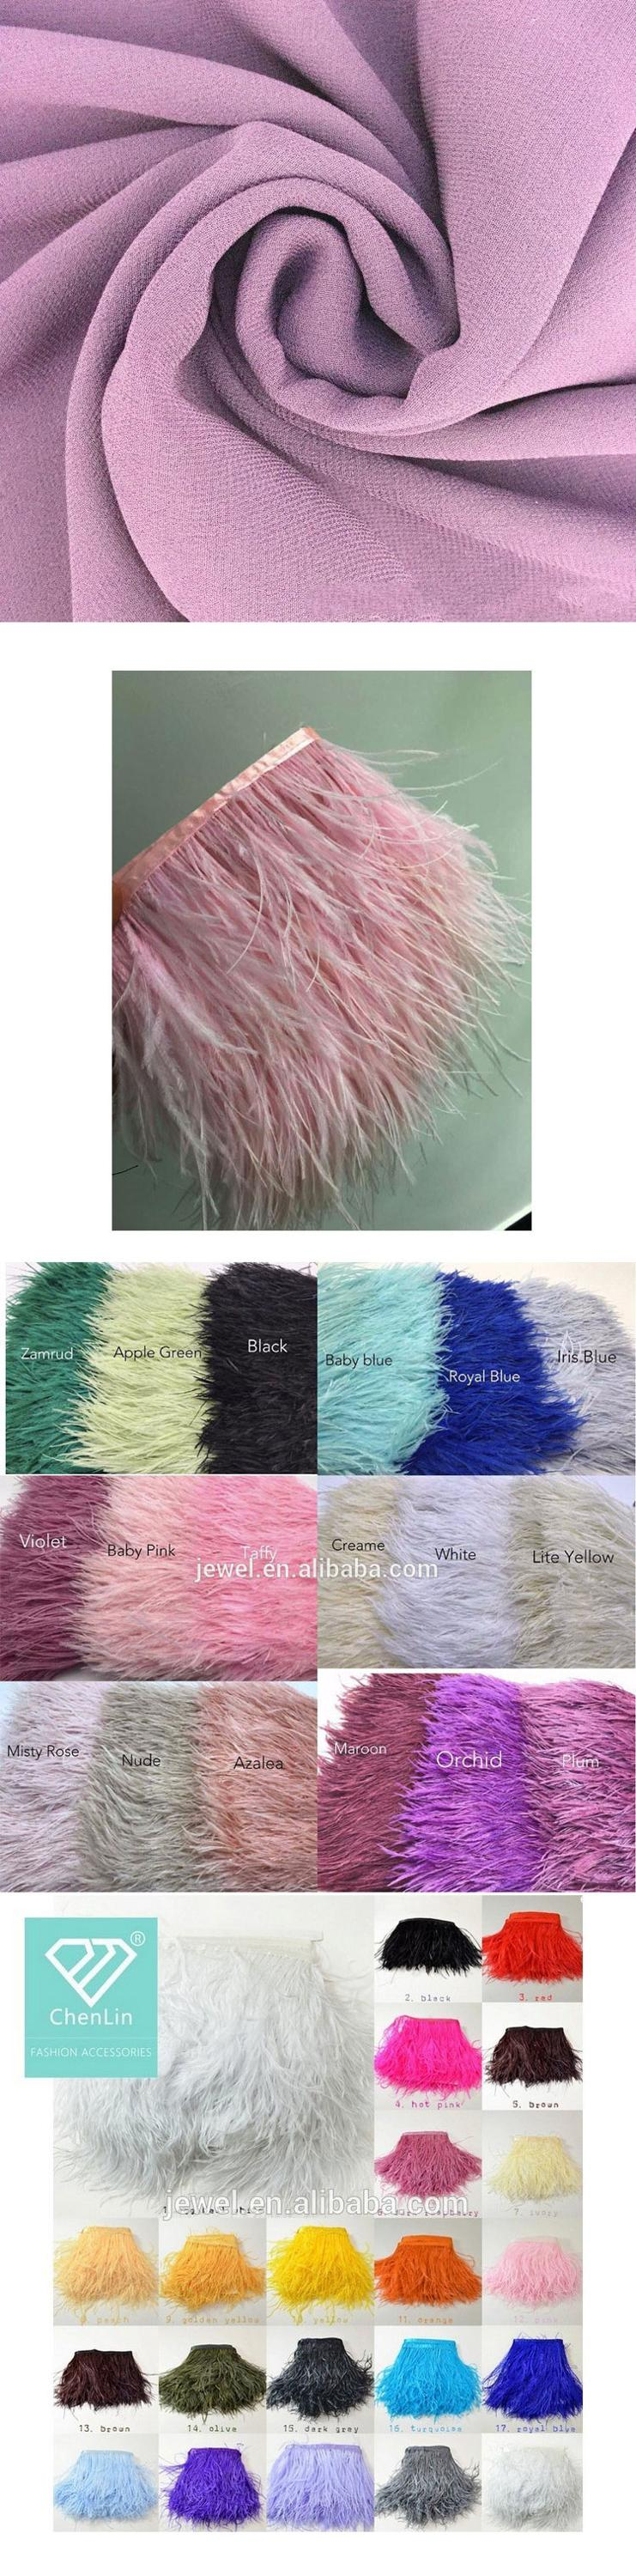 Fashion Customize Chiffon Hijab with Feather for muslim women Luxury Plain Color Feather Style scarf  Popular Design Scarves